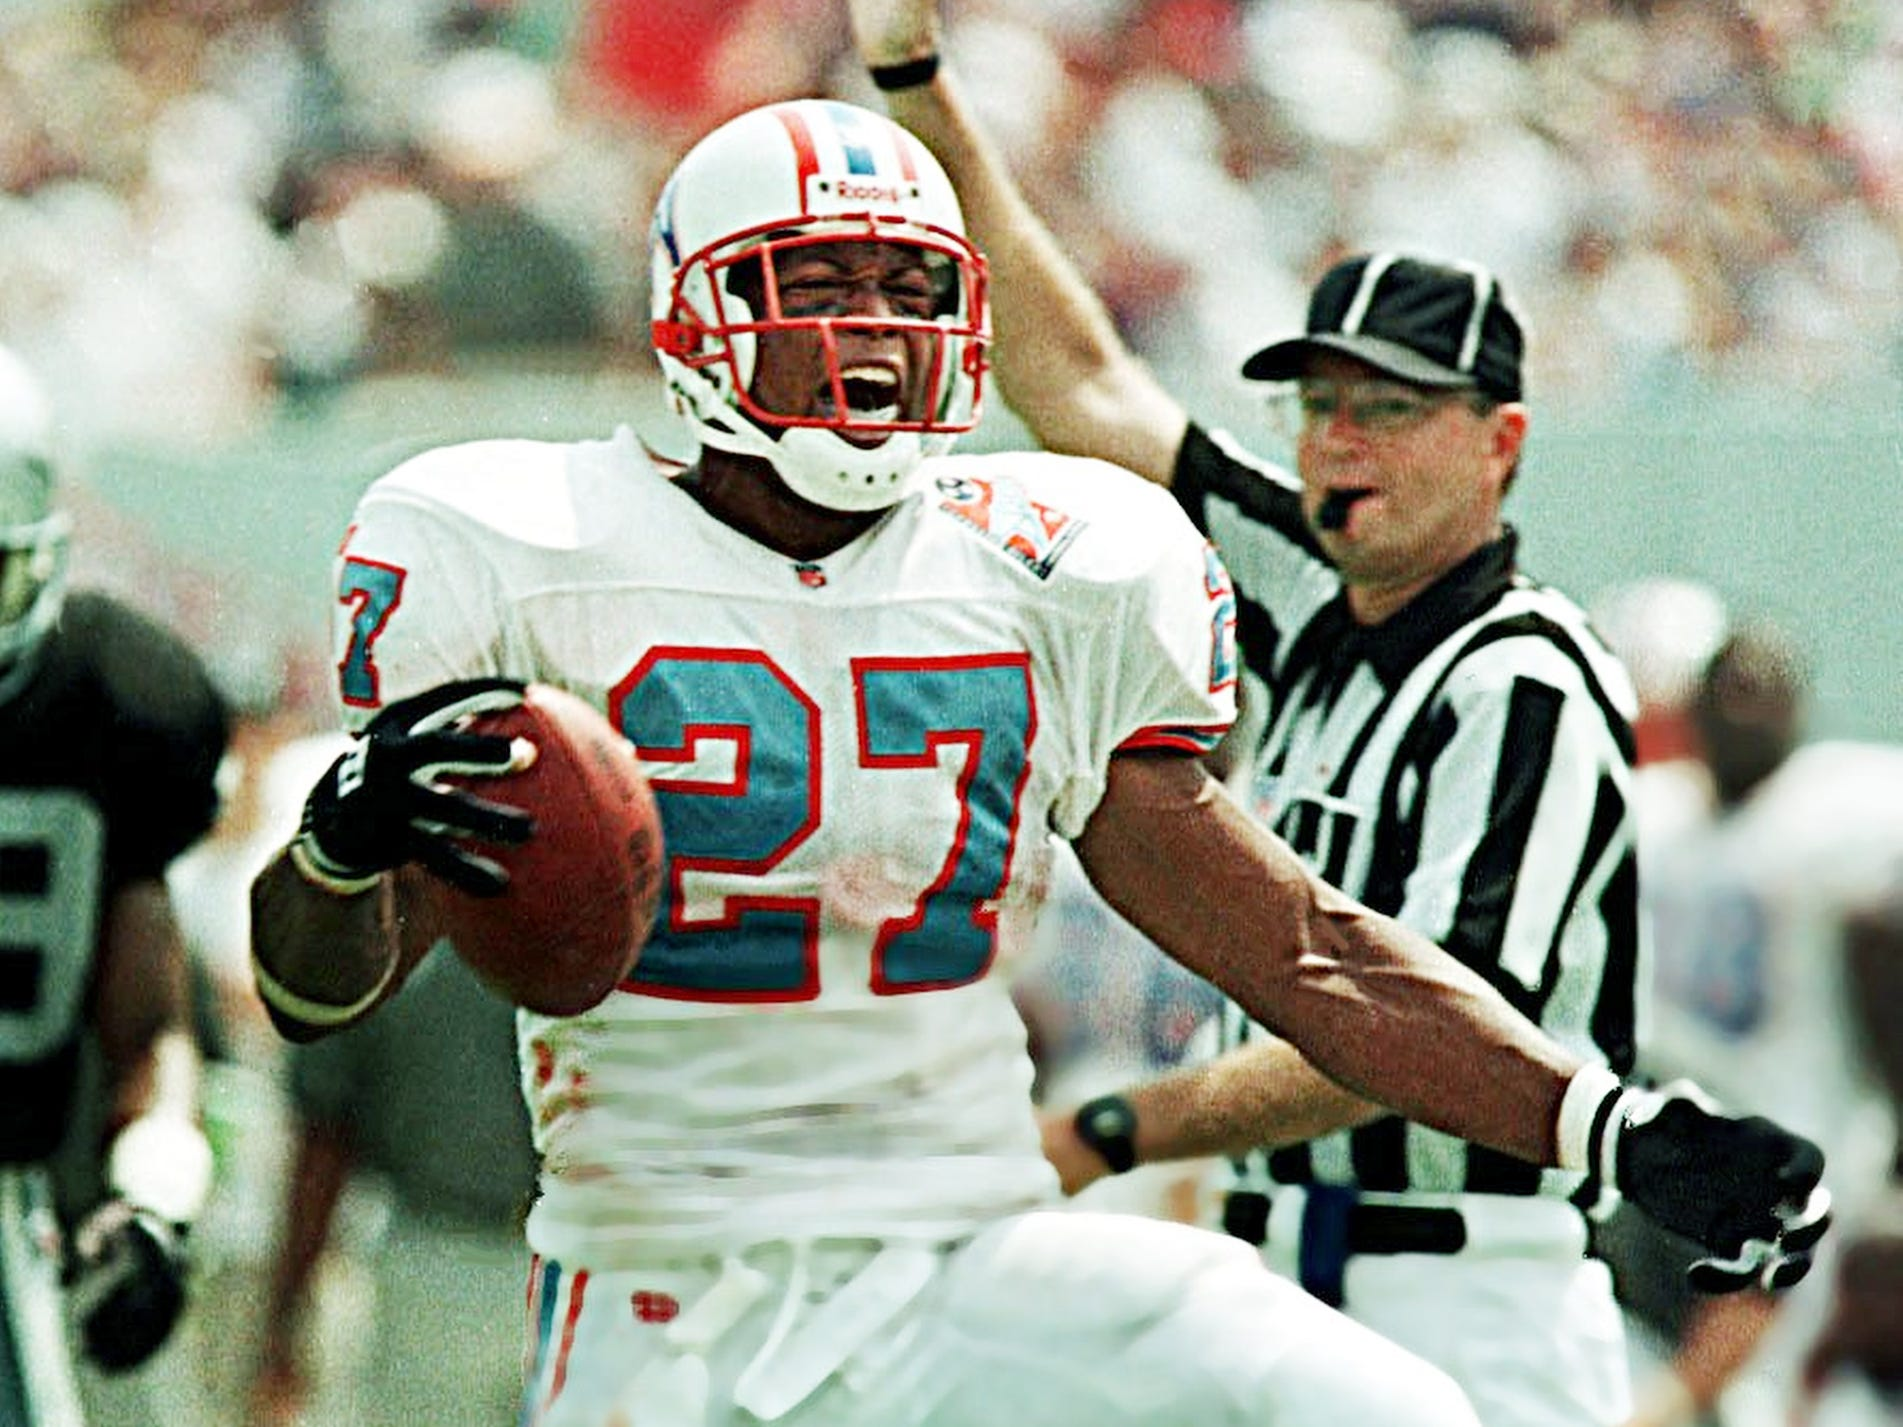 Running back Eddie George yells after a run that put the Tennessee Oilers near the goal line in the opening day game against the Oakland Raiders Aug. 31, 1997 in Memphis, Tenn.